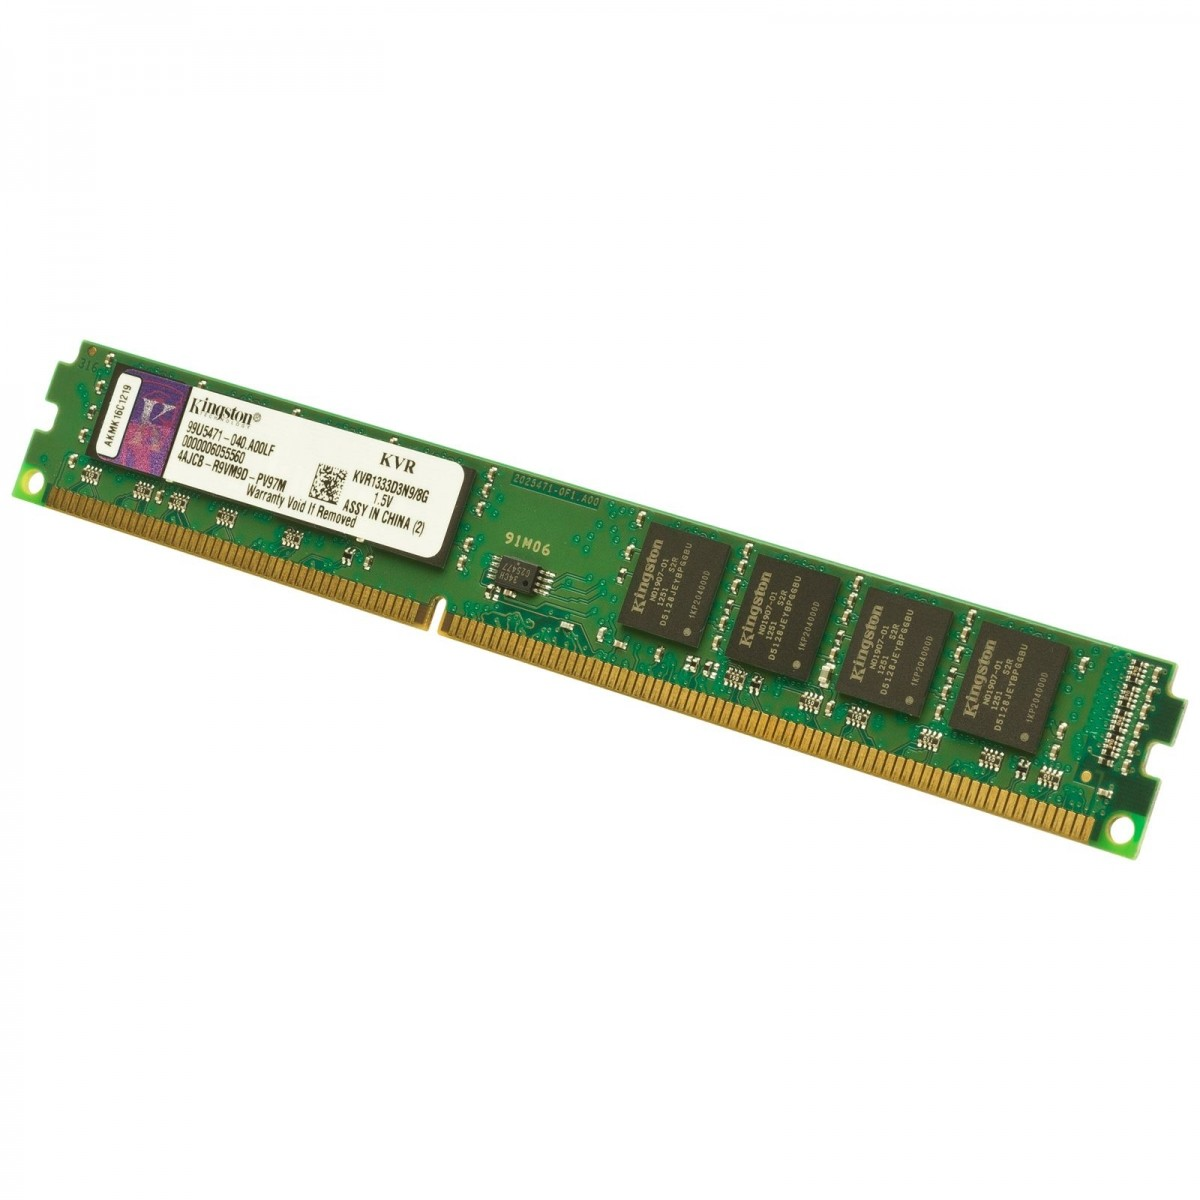 Memória de 8GB DDR3 1333Mhz 10600 CL9 KVR1333D3N9/8G - Kingston